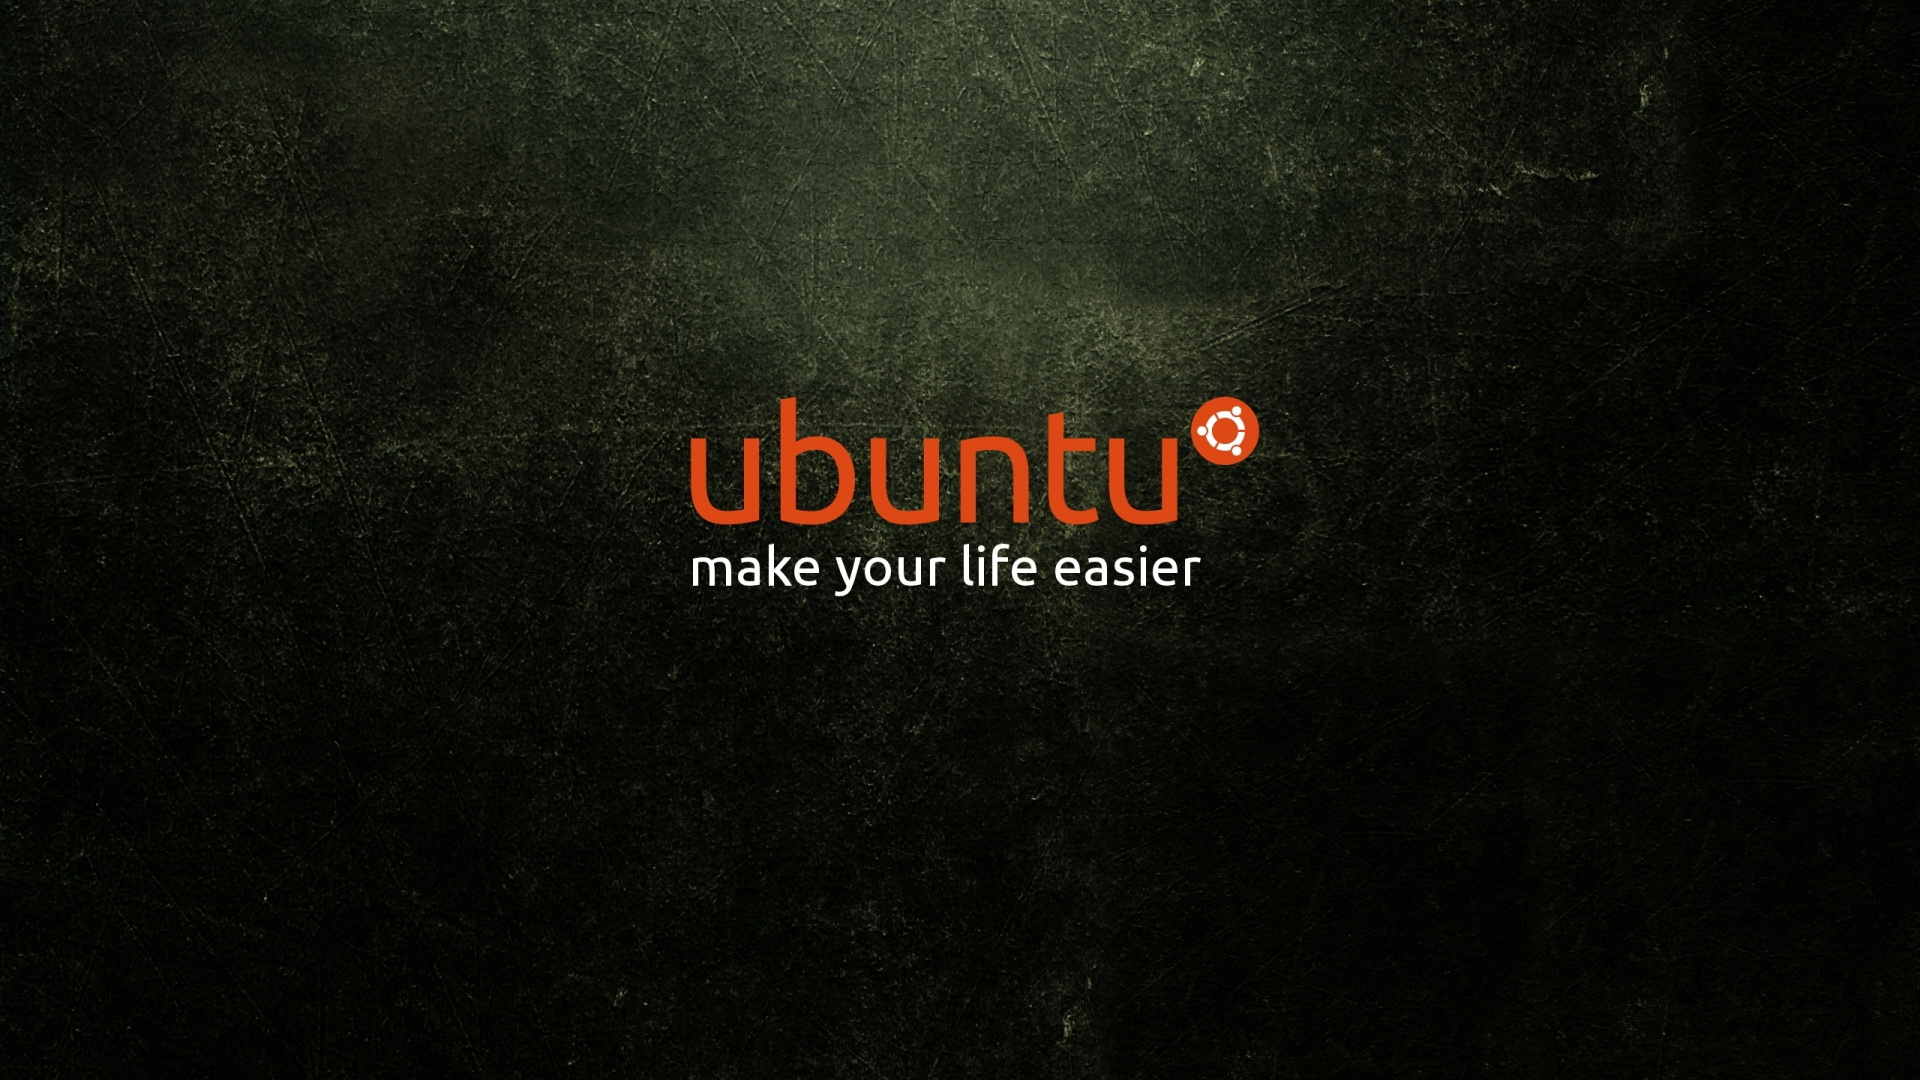 wallpaper ubuntu wallpapers resoluciones 1920x1080